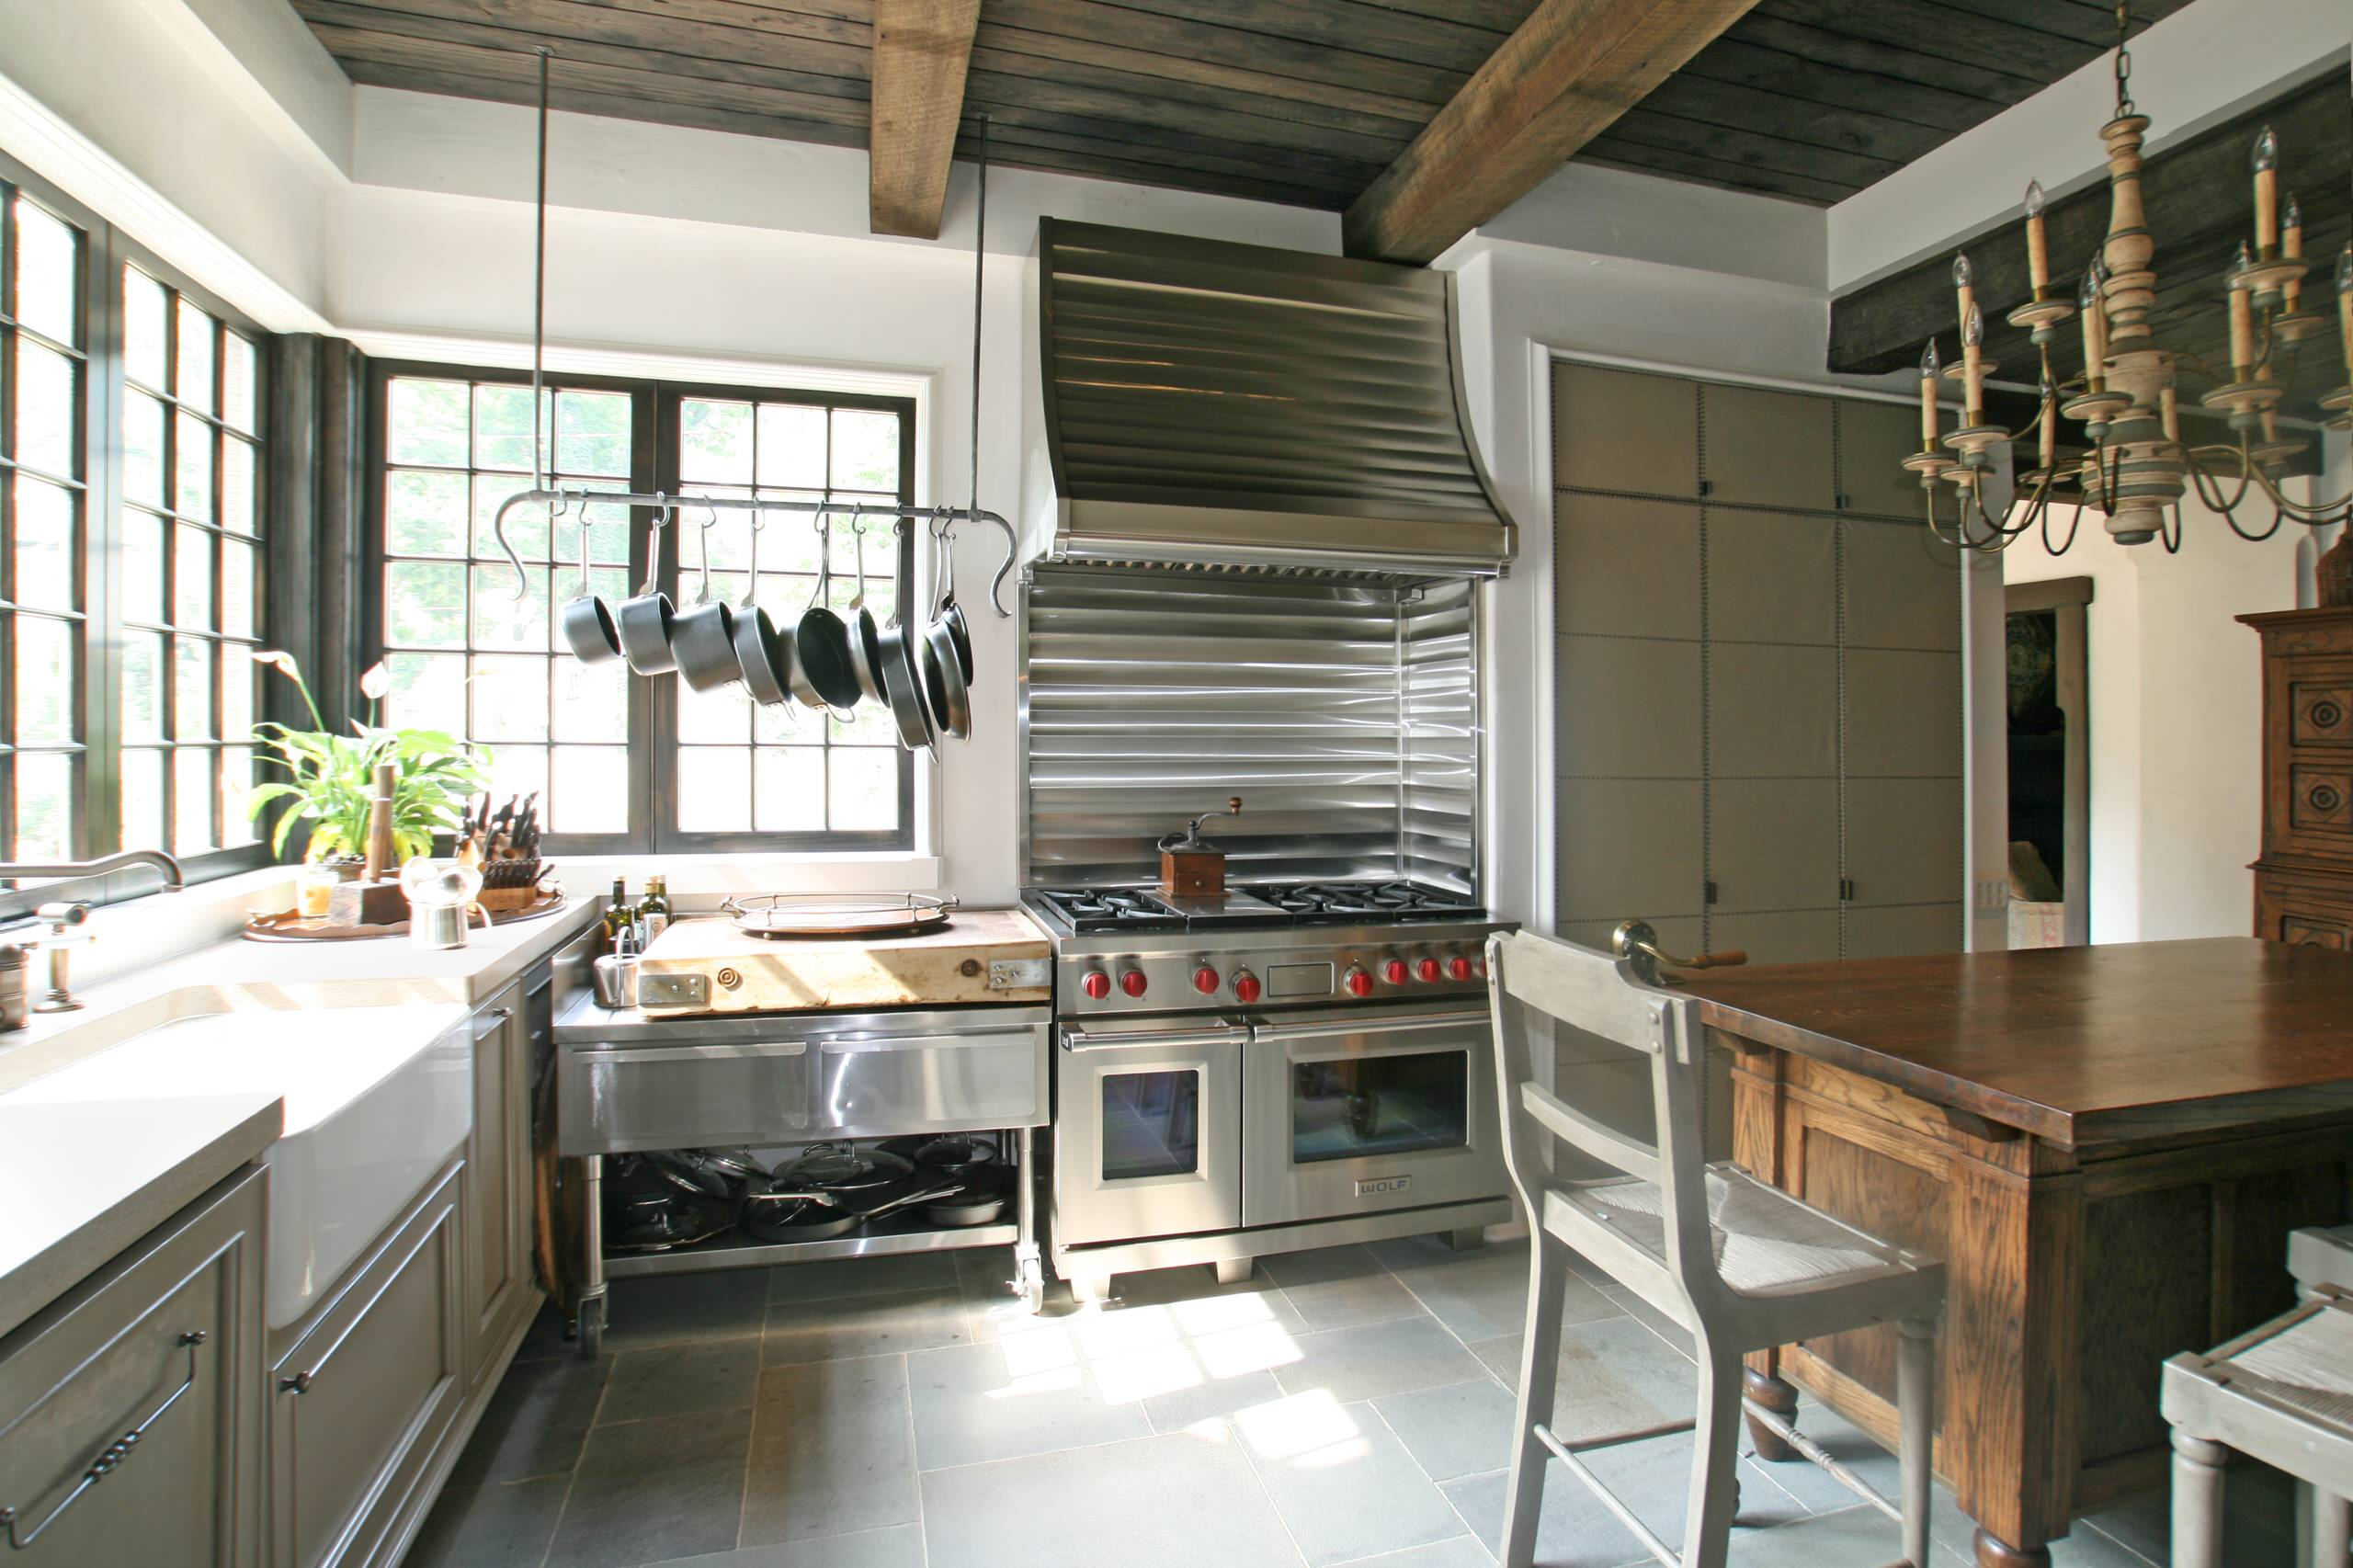 How to clean stainless steel stove Traditional Kitchen breakfast bar bridge faucet butcher block countertops roman shades shaker chairs stainless steel appliances